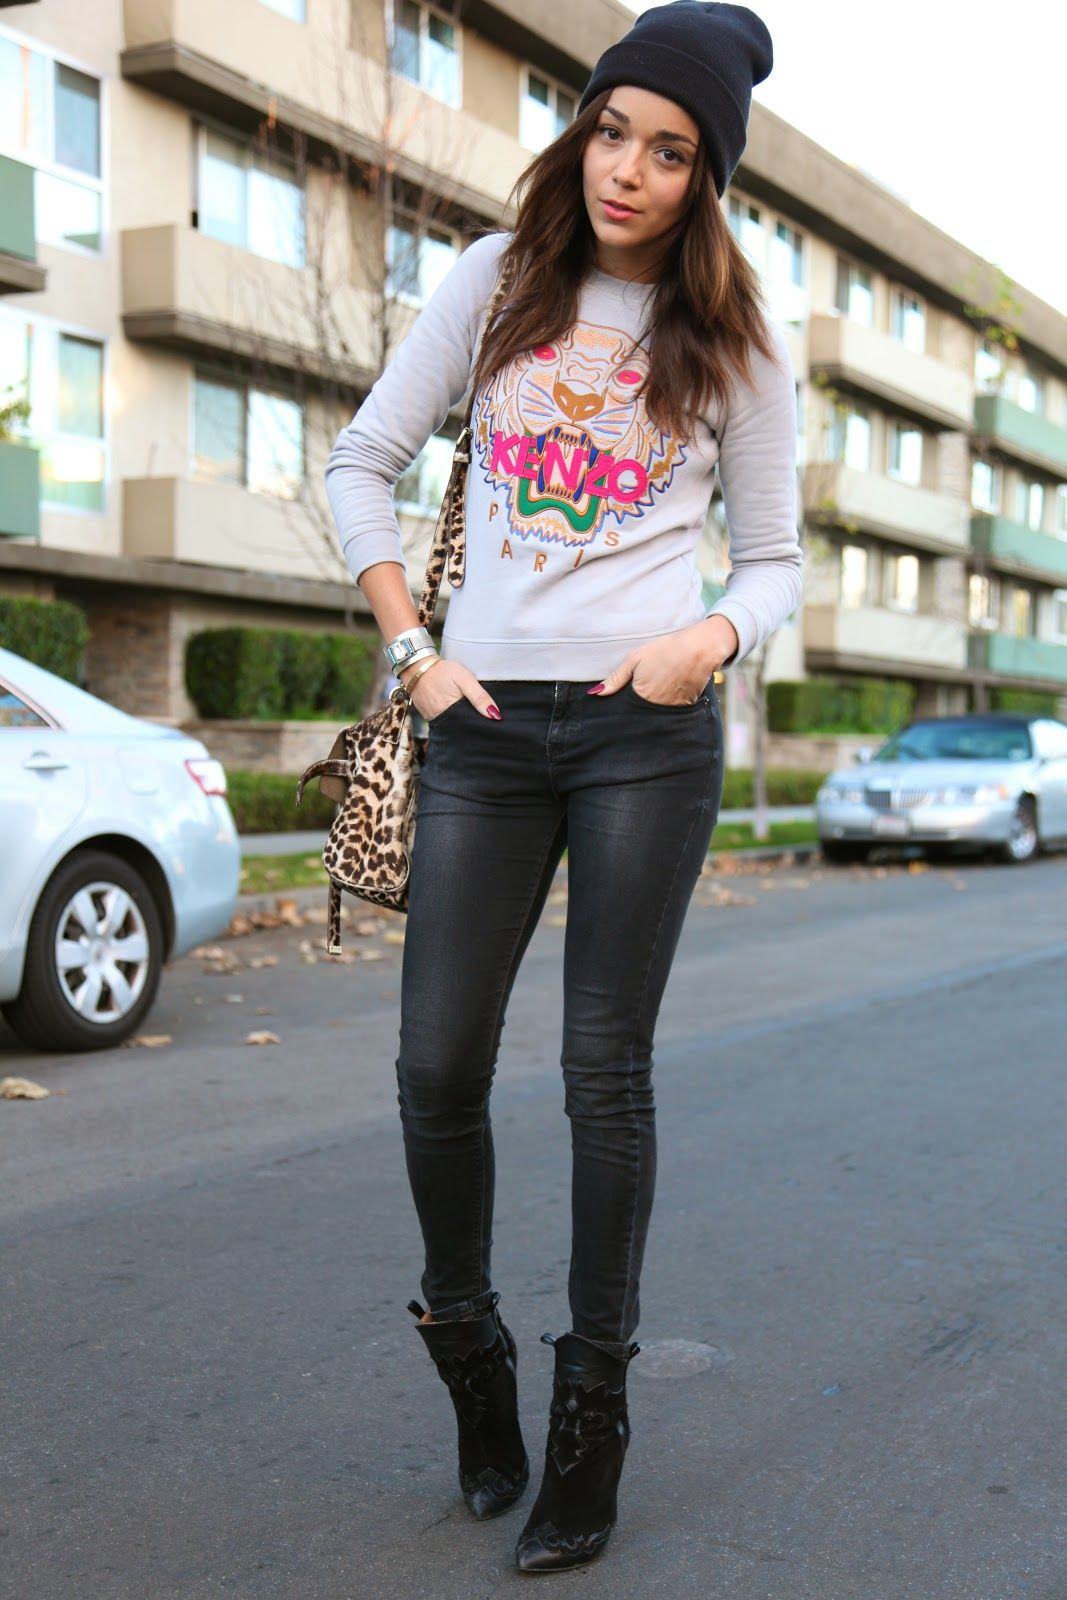 03d08b092 Tiger Sweatshirt: Kenzo (alternative here). Jeans: TopShop. Boots: Zara.  Bag: Mulberry (get the look here). Cuff: Courtesy of Sophie Blake.